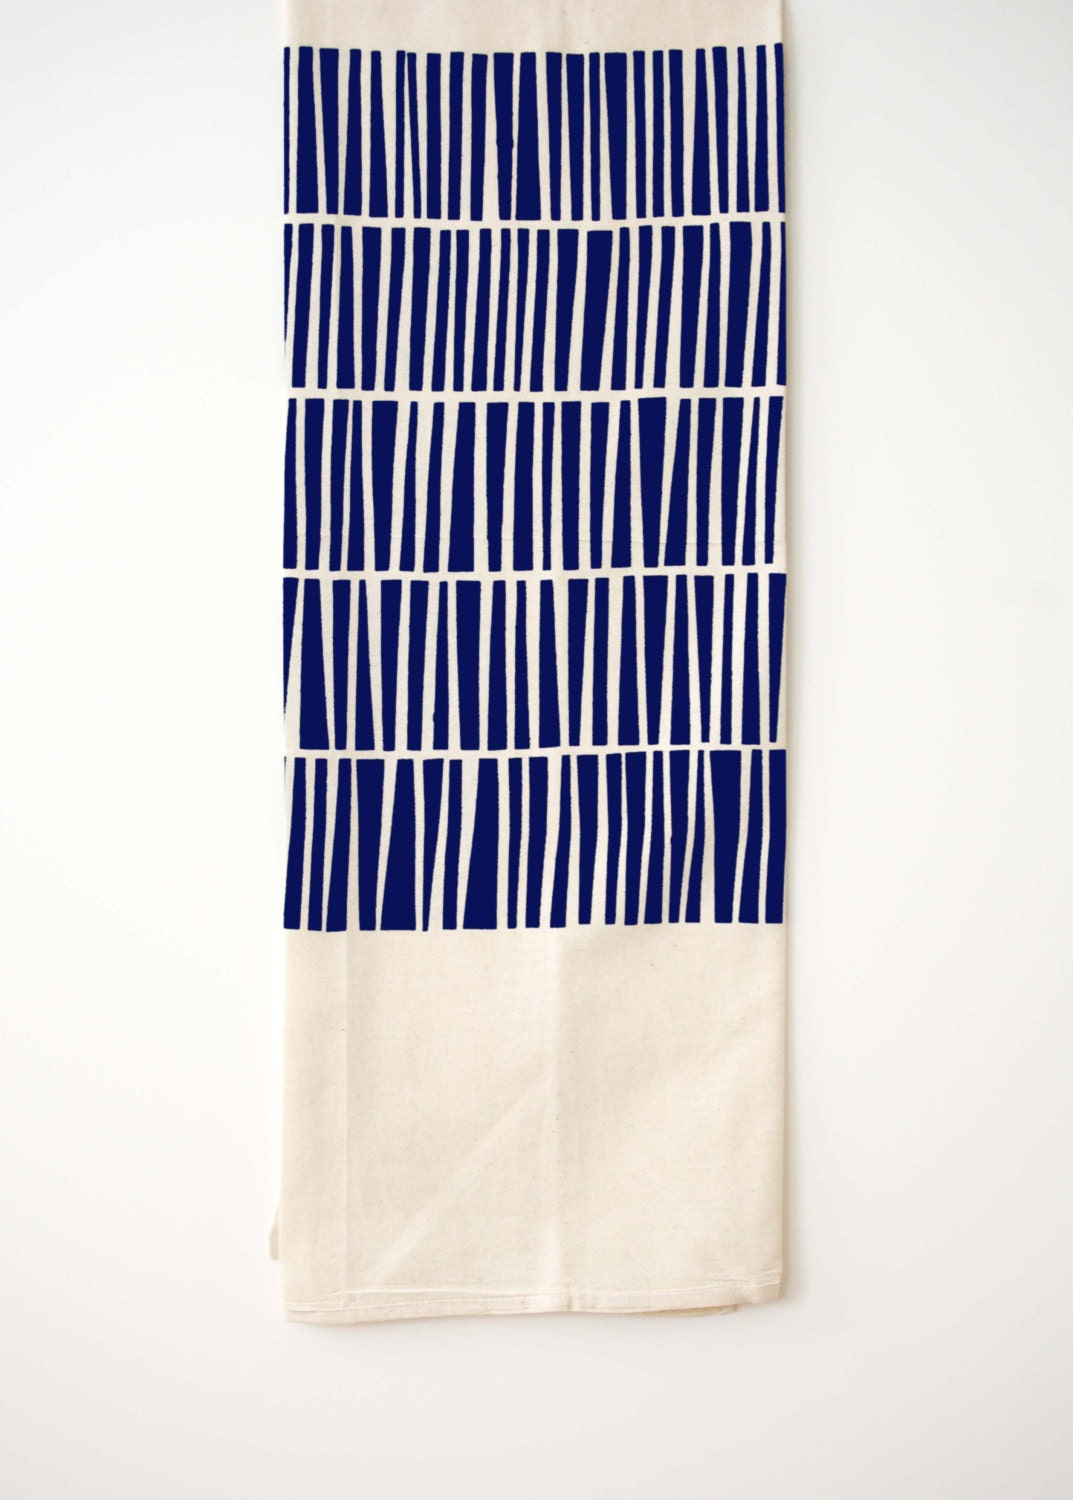 Keys - Flour Sack Tea Towel - Navy Blue - Organic Cotton - Dish Towel - Screen Print - shapescolors